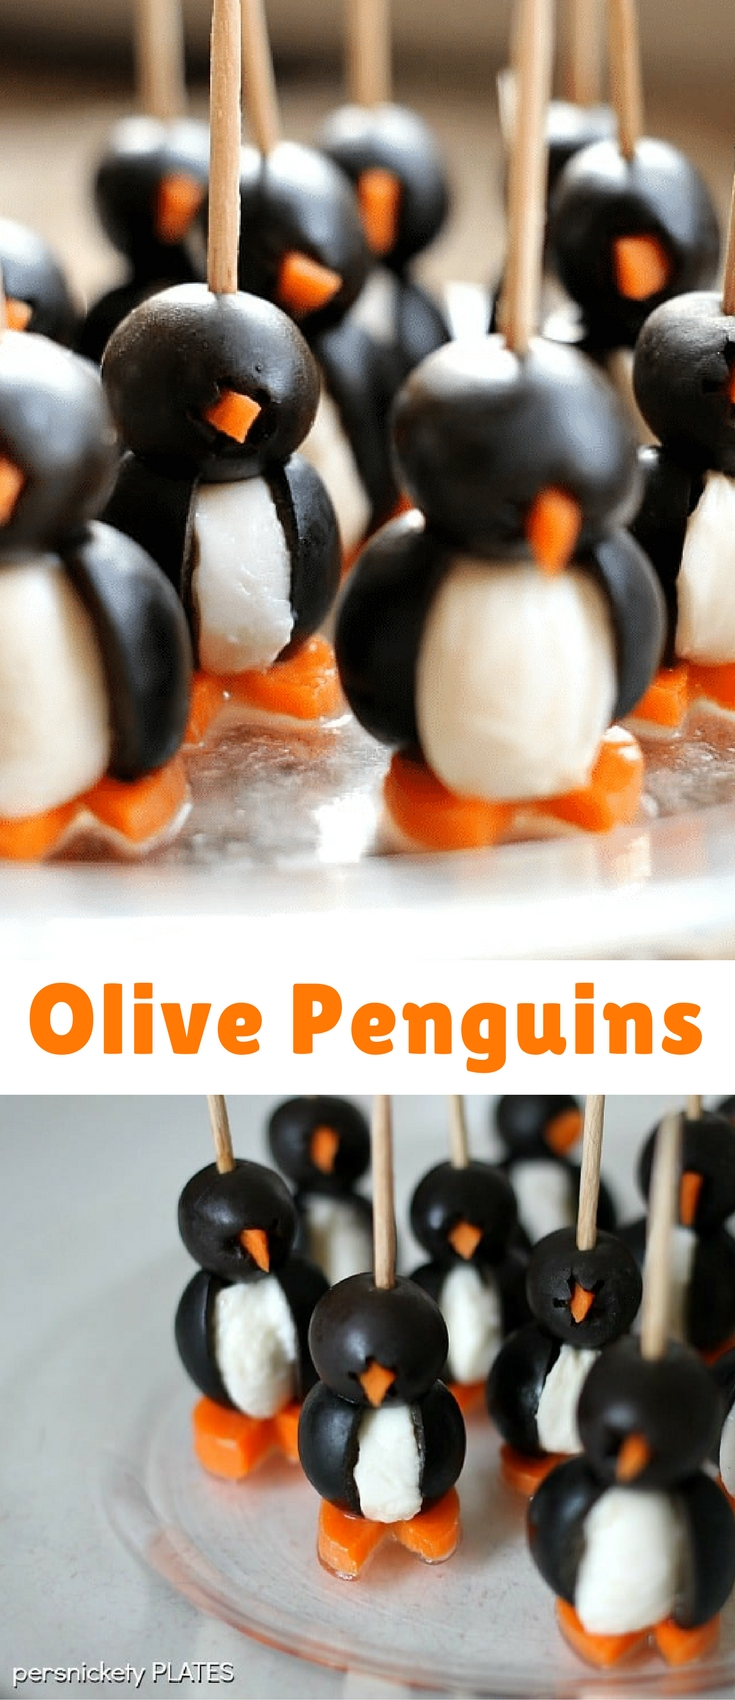 Simple Olive Penguins made with black olives, mozzarella balls, and carrots, are adorable and make a fun appetizer!